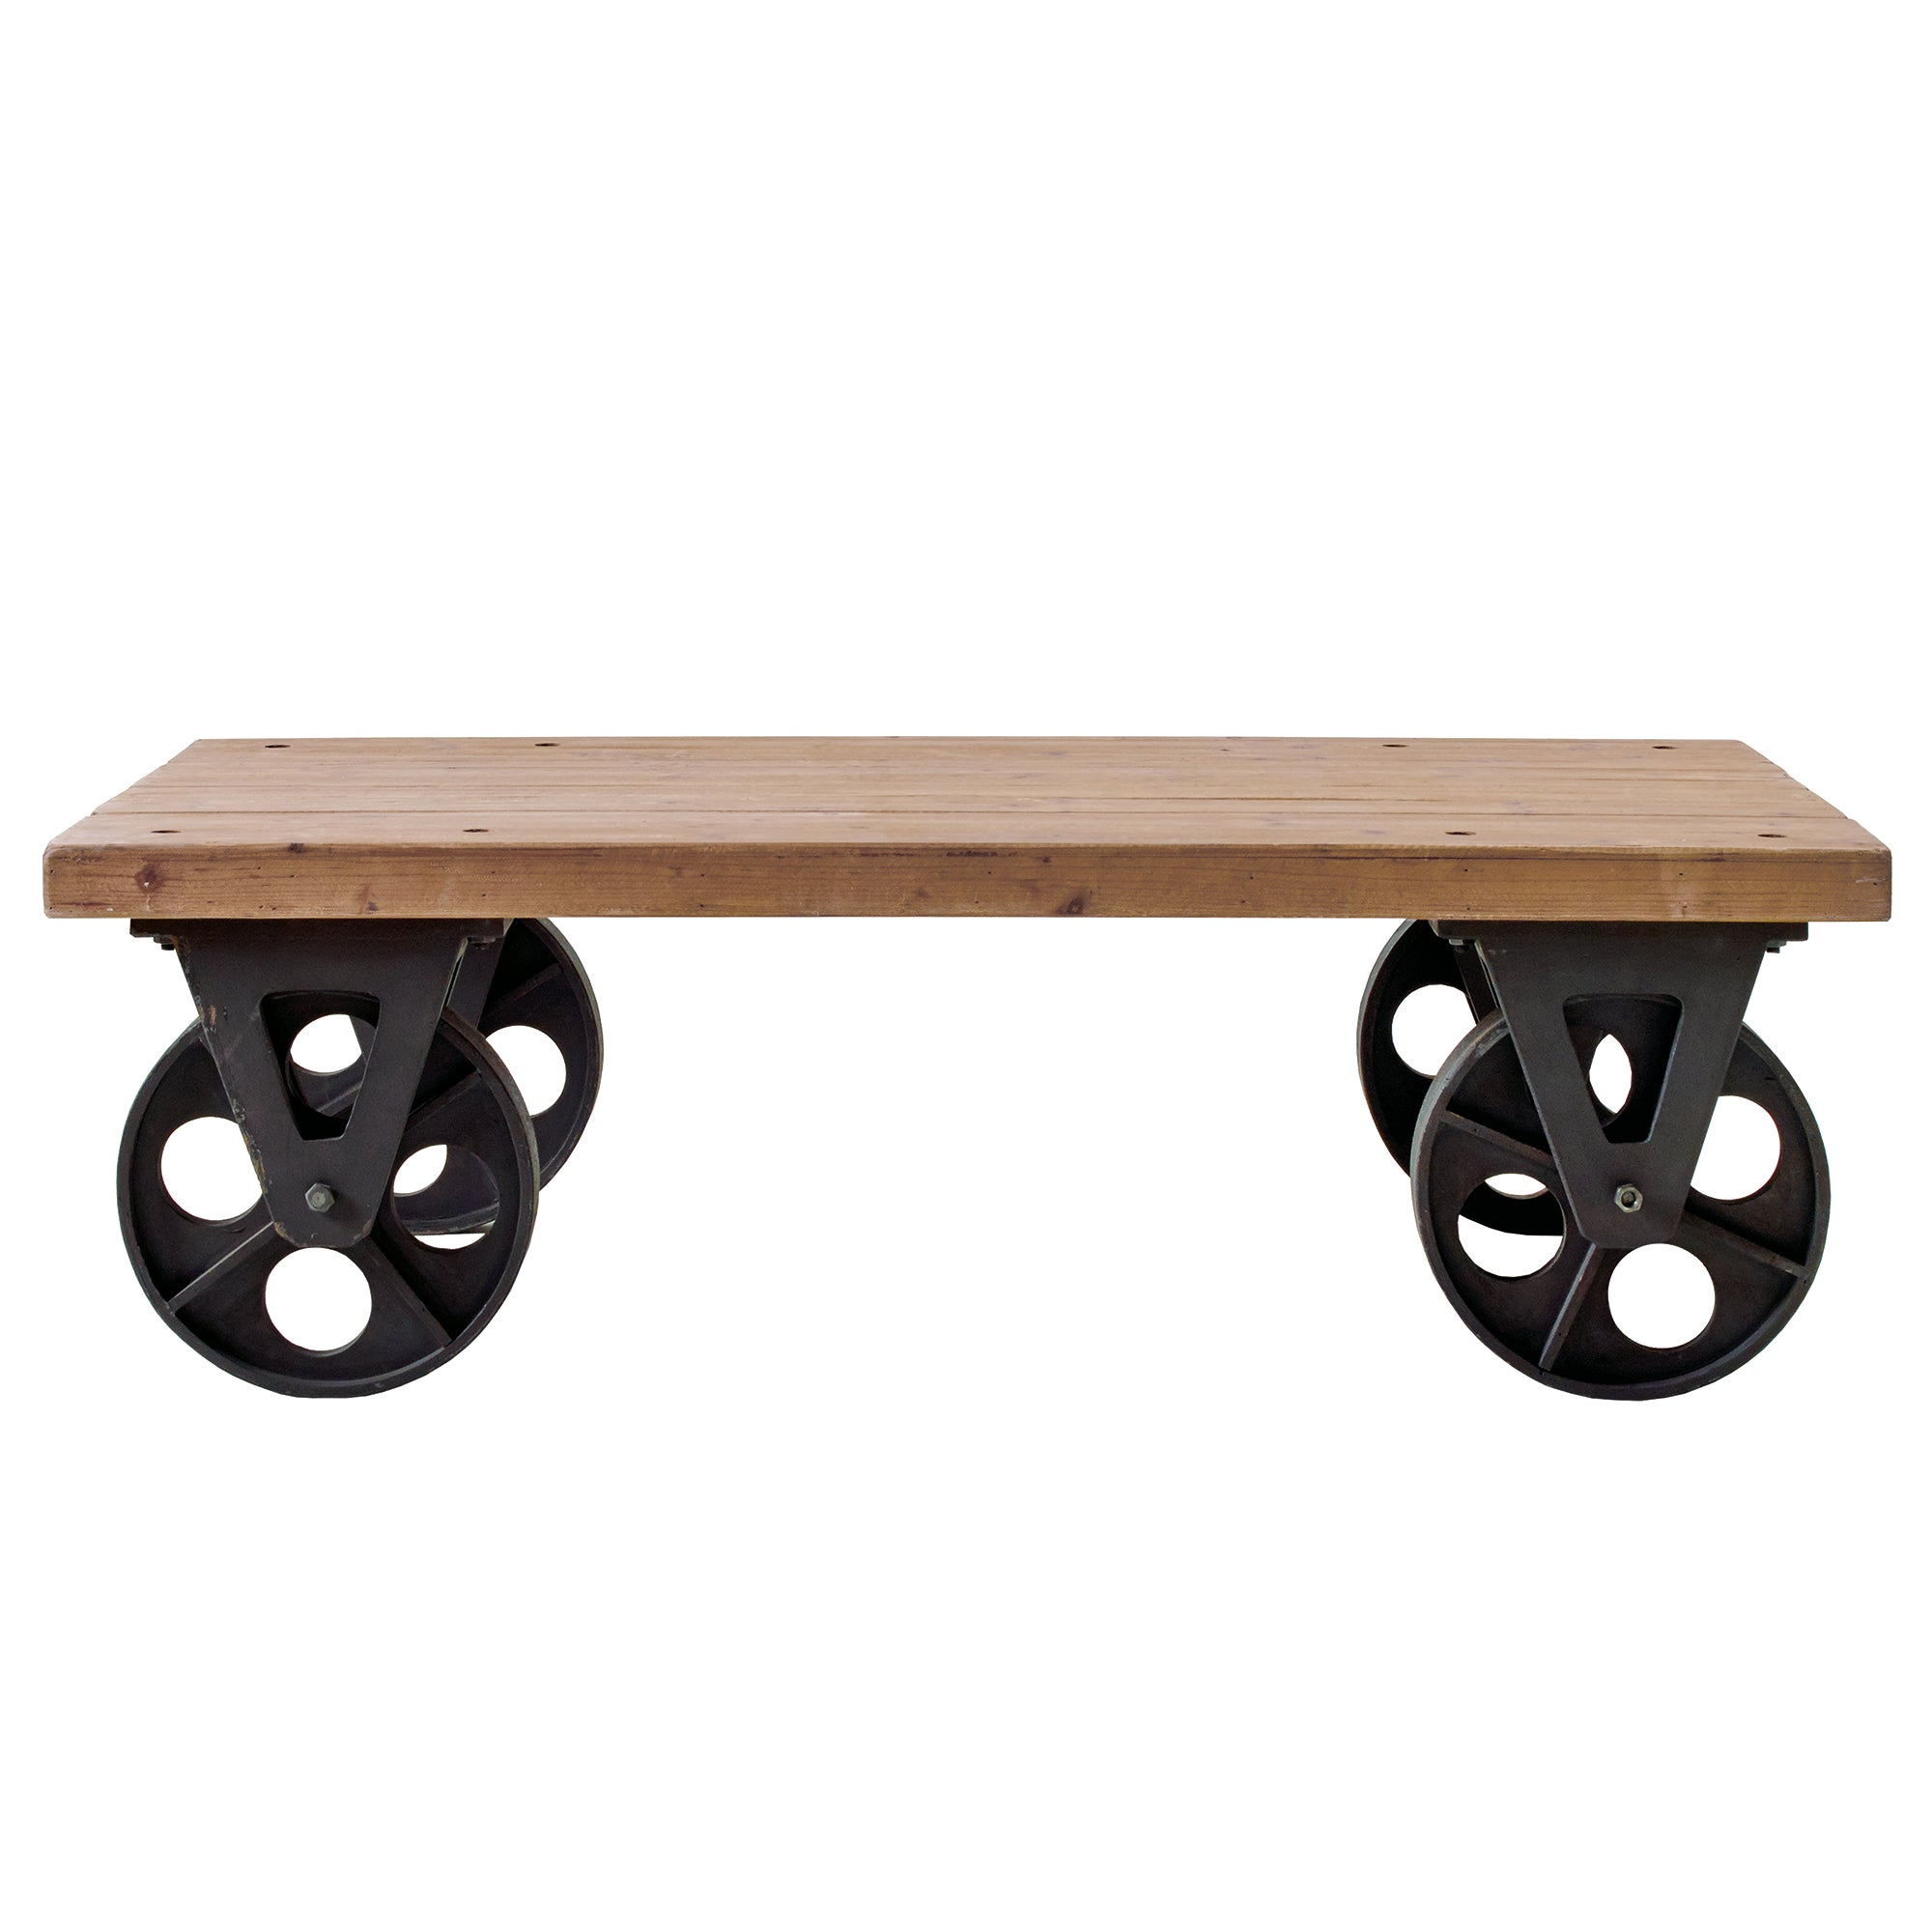 Photo of Spitalfields coffee table with wheels brown